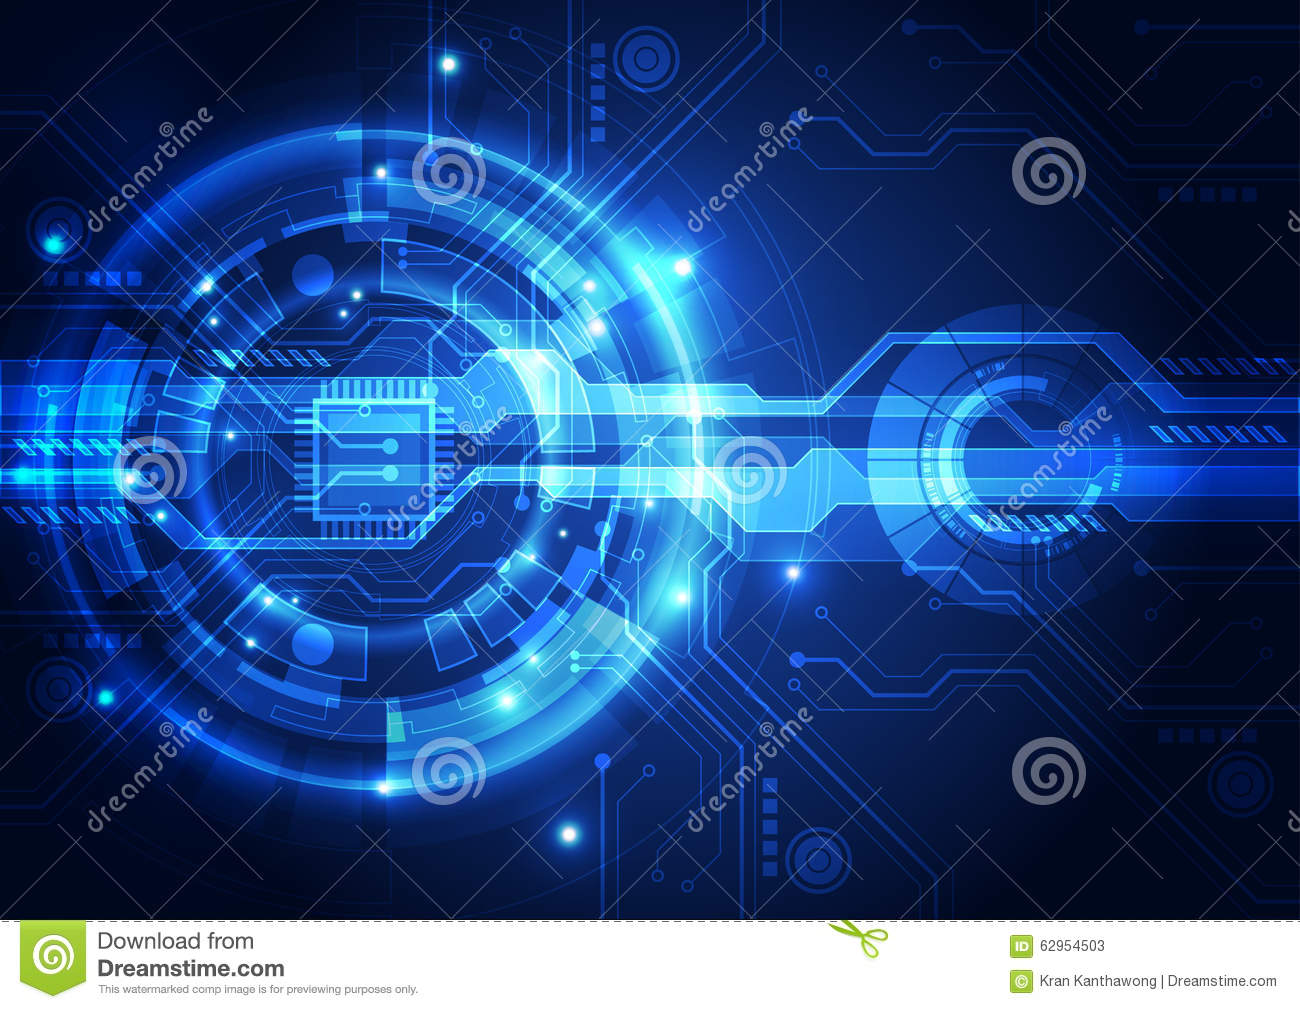 Technology Abstract Background Stock Illustration: Abstract Futuristic Digital Technology Background